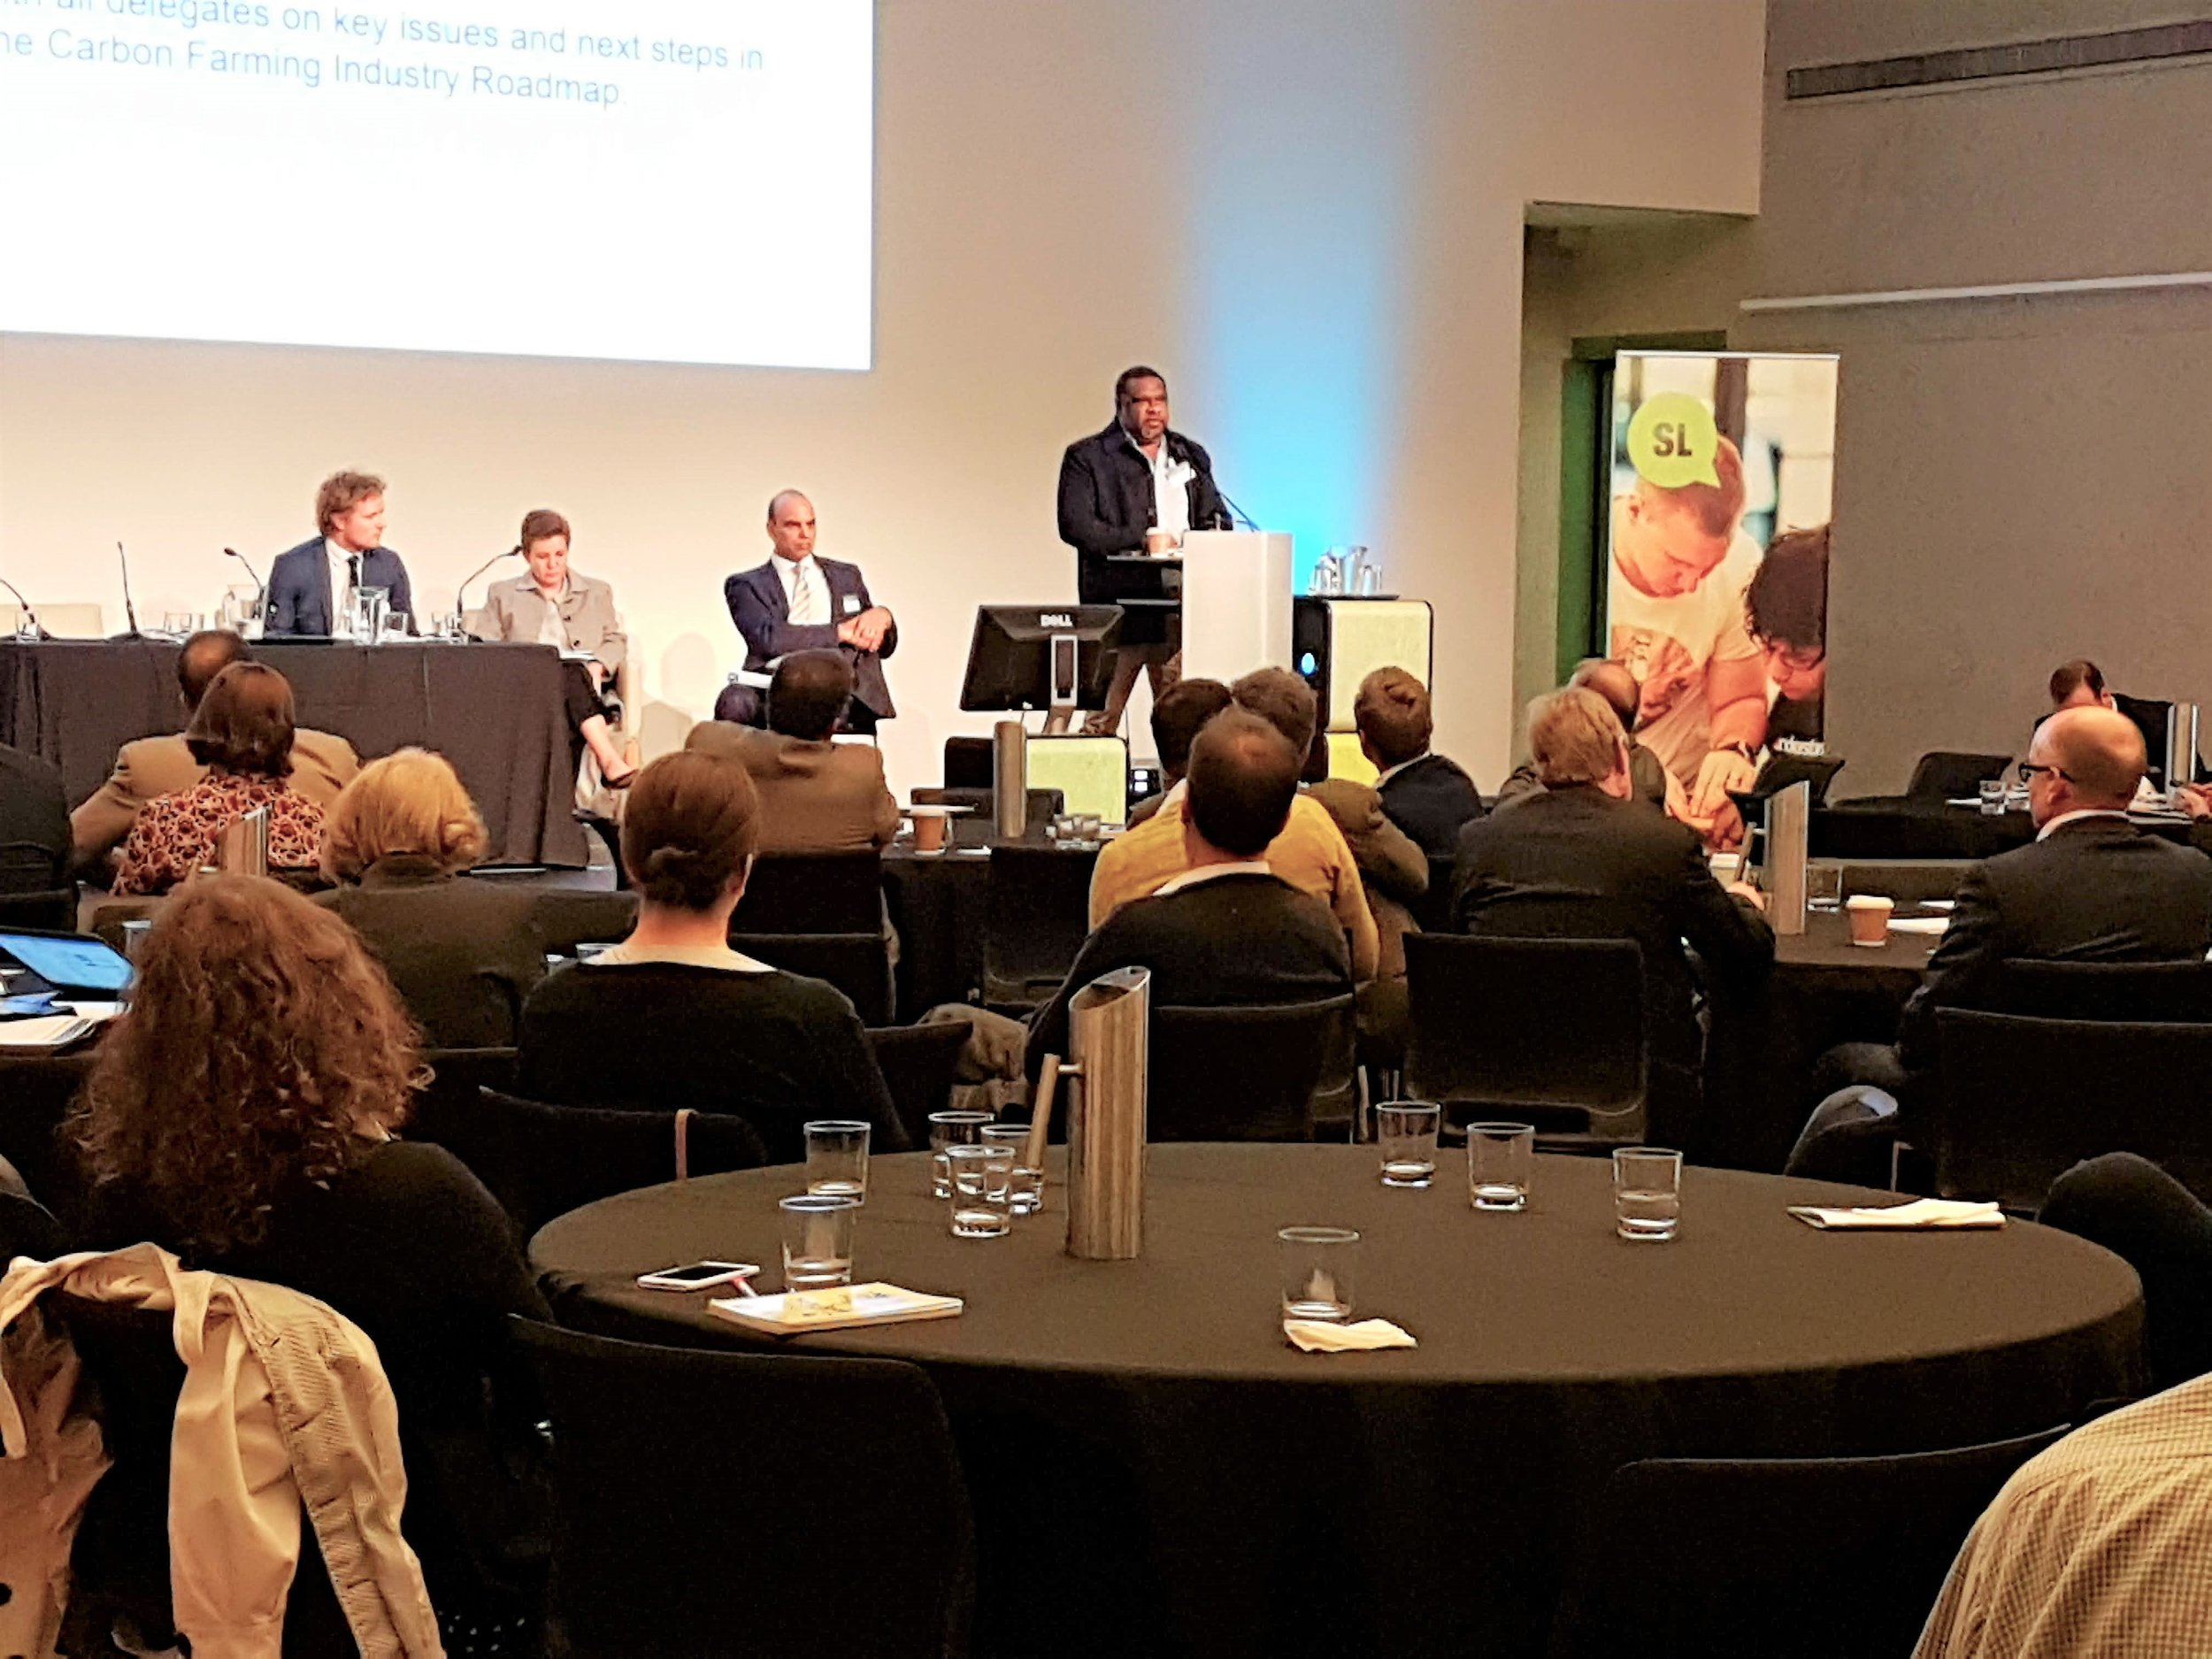 Aboriginal Carbon Fund Regional Manager Barry Hunter speaking at the Carbon Farming Industry Summit in Brisbane. (Photo: Lauren Bowyer)